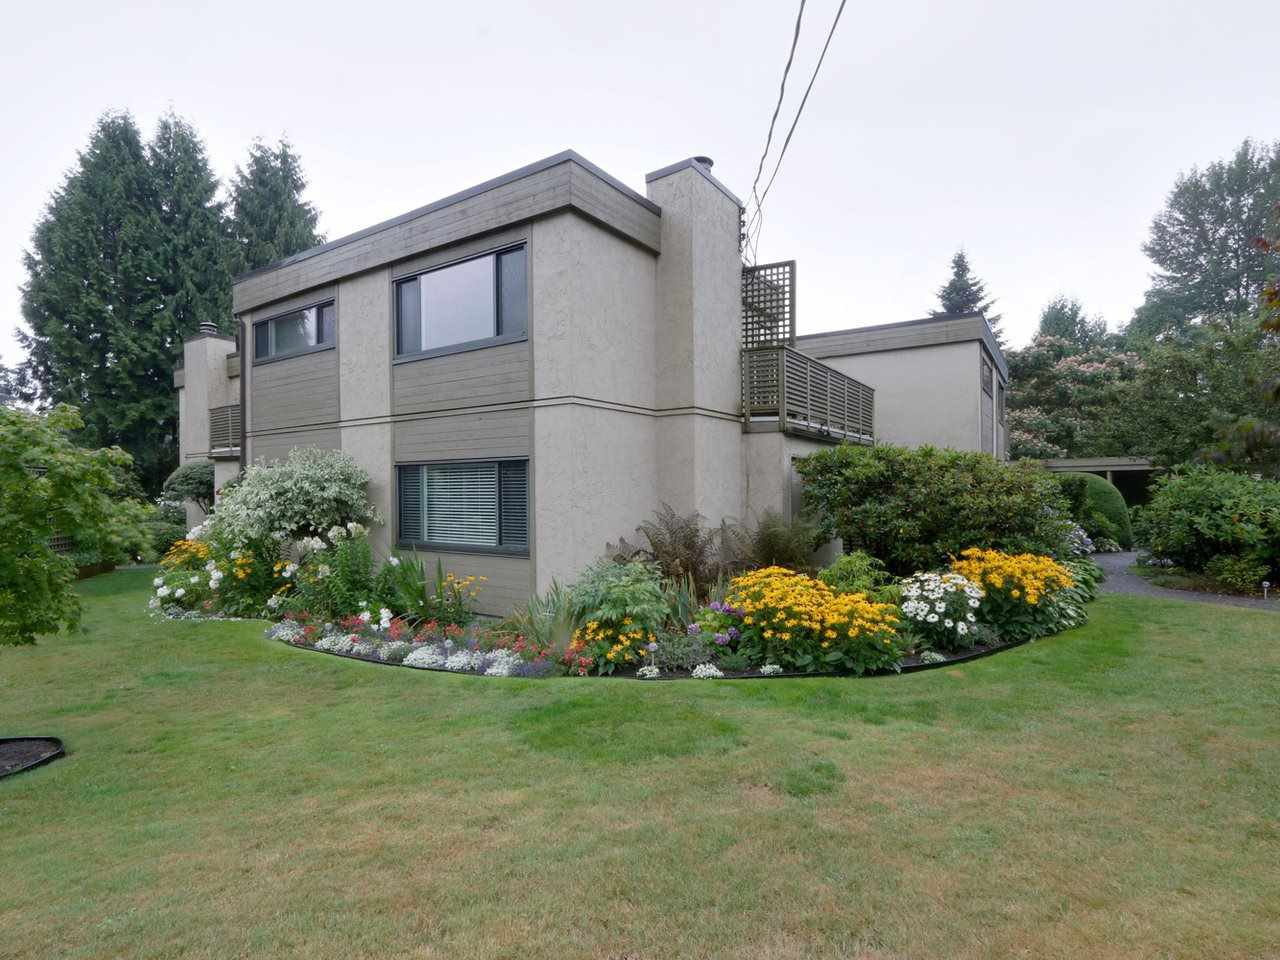 Main Photo: 1259 PLATEAU DRIVE in North Vancouver: Pemberton Heights Condo for sale : MLS®# R2495881